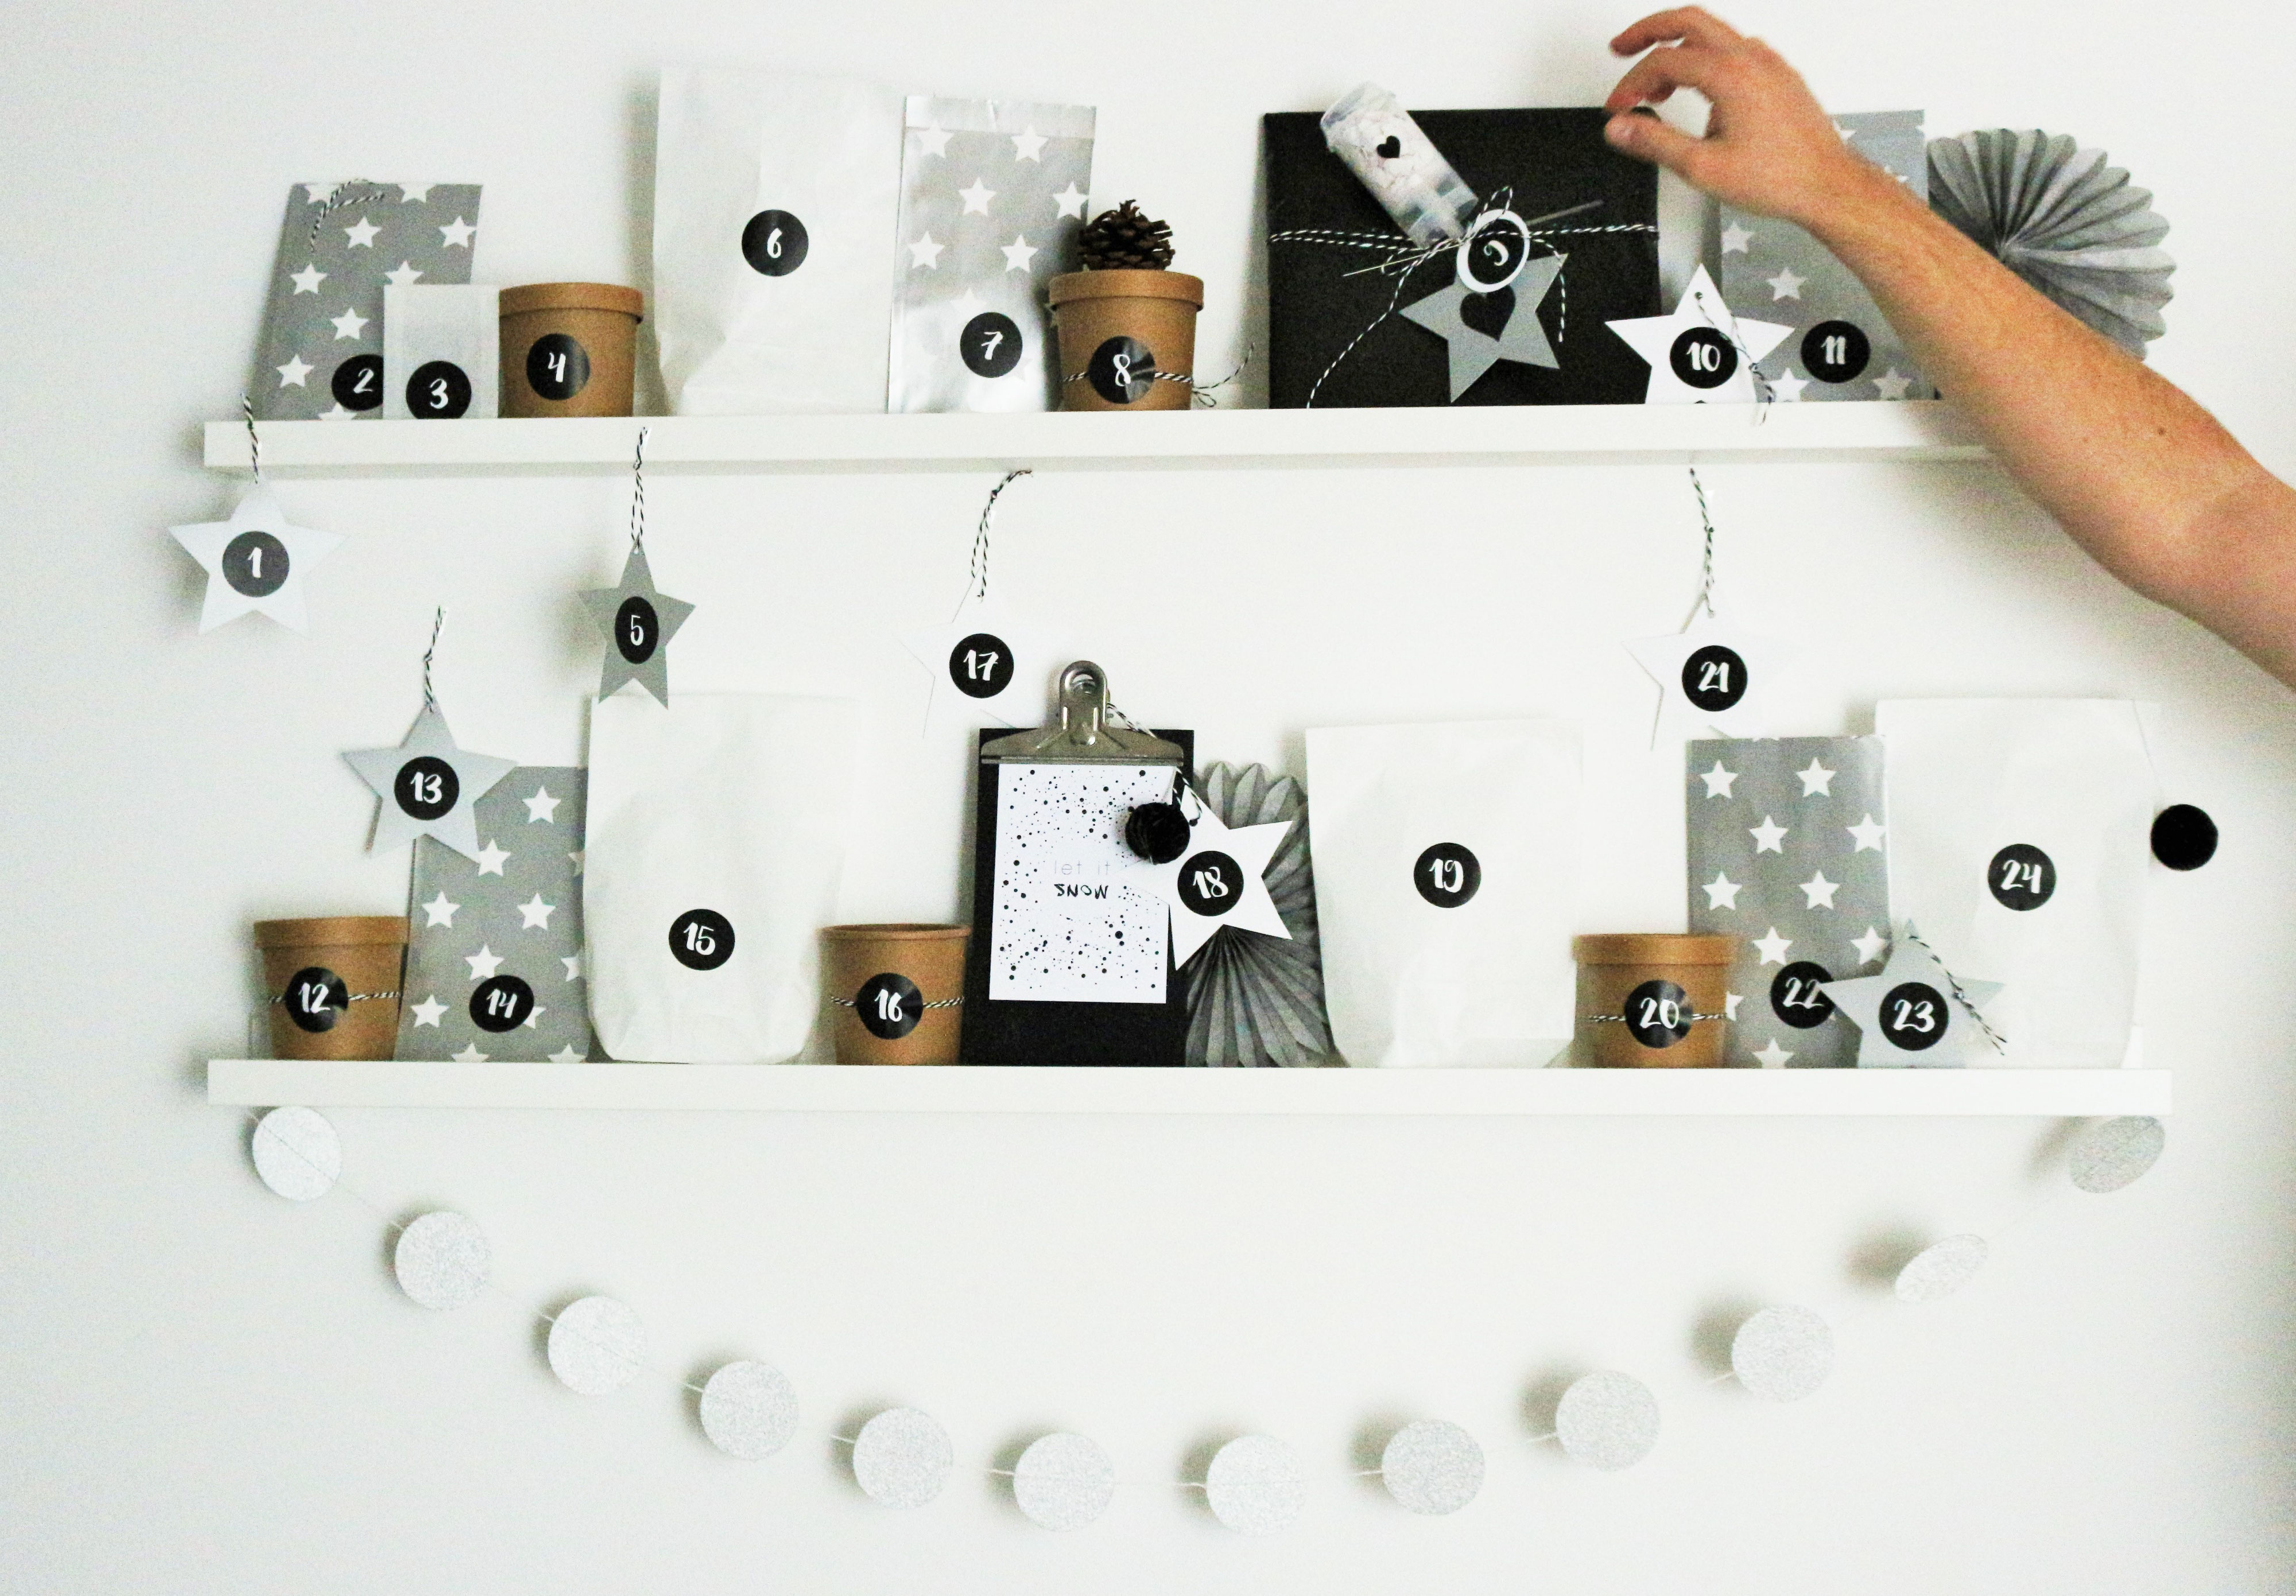 diy adventskalender f r ihn partystories blog. Black Bedroom Furniture Sets. Home Design Ideas